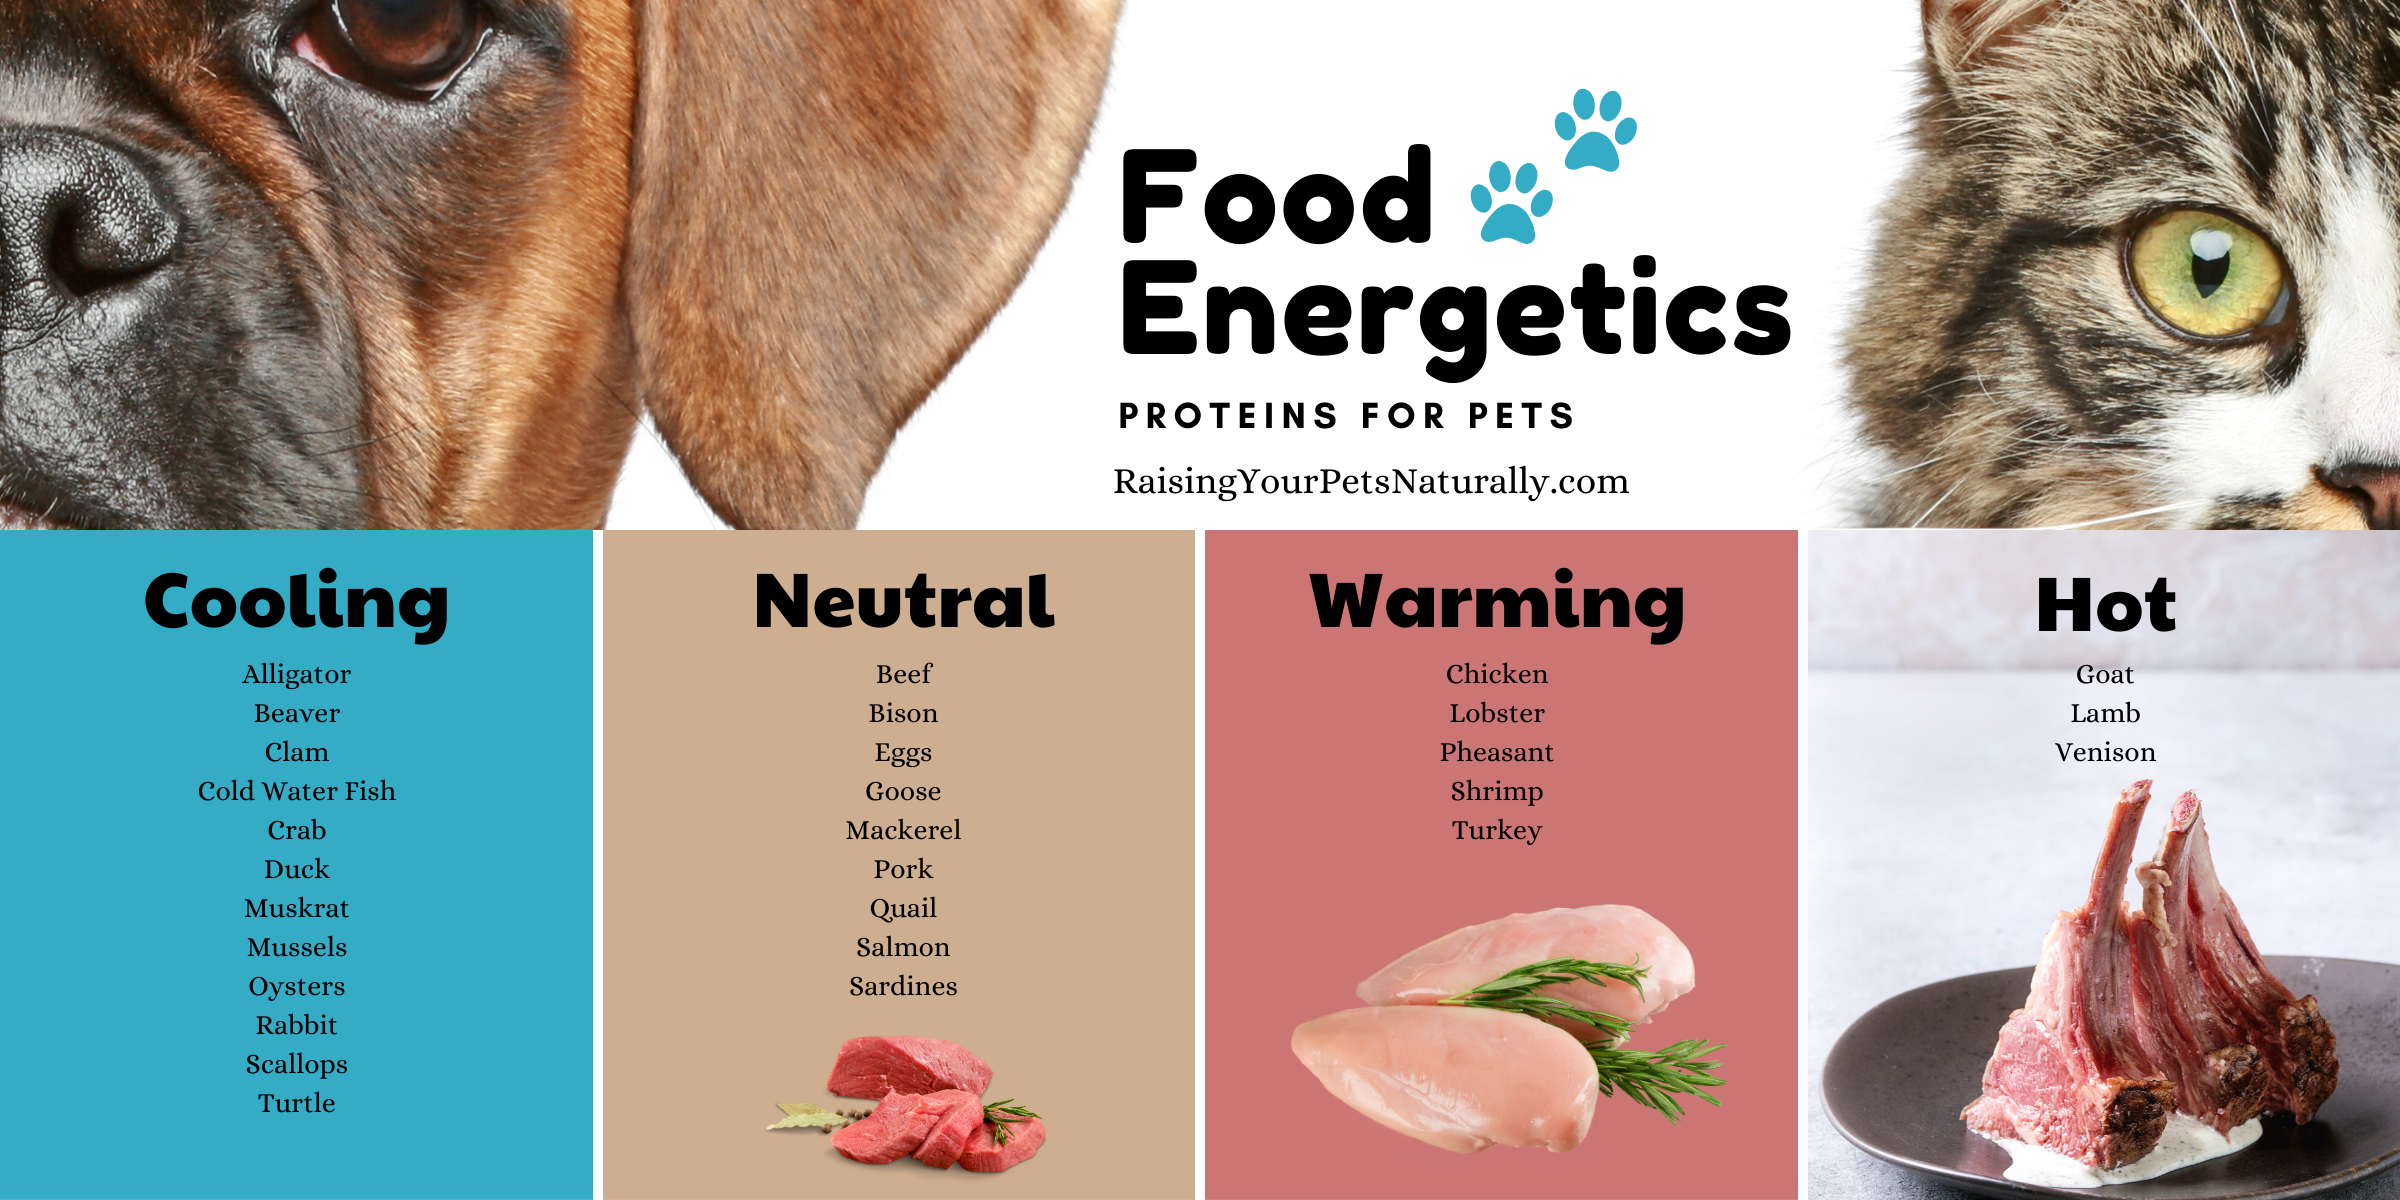 Energetics of various proteins for pets